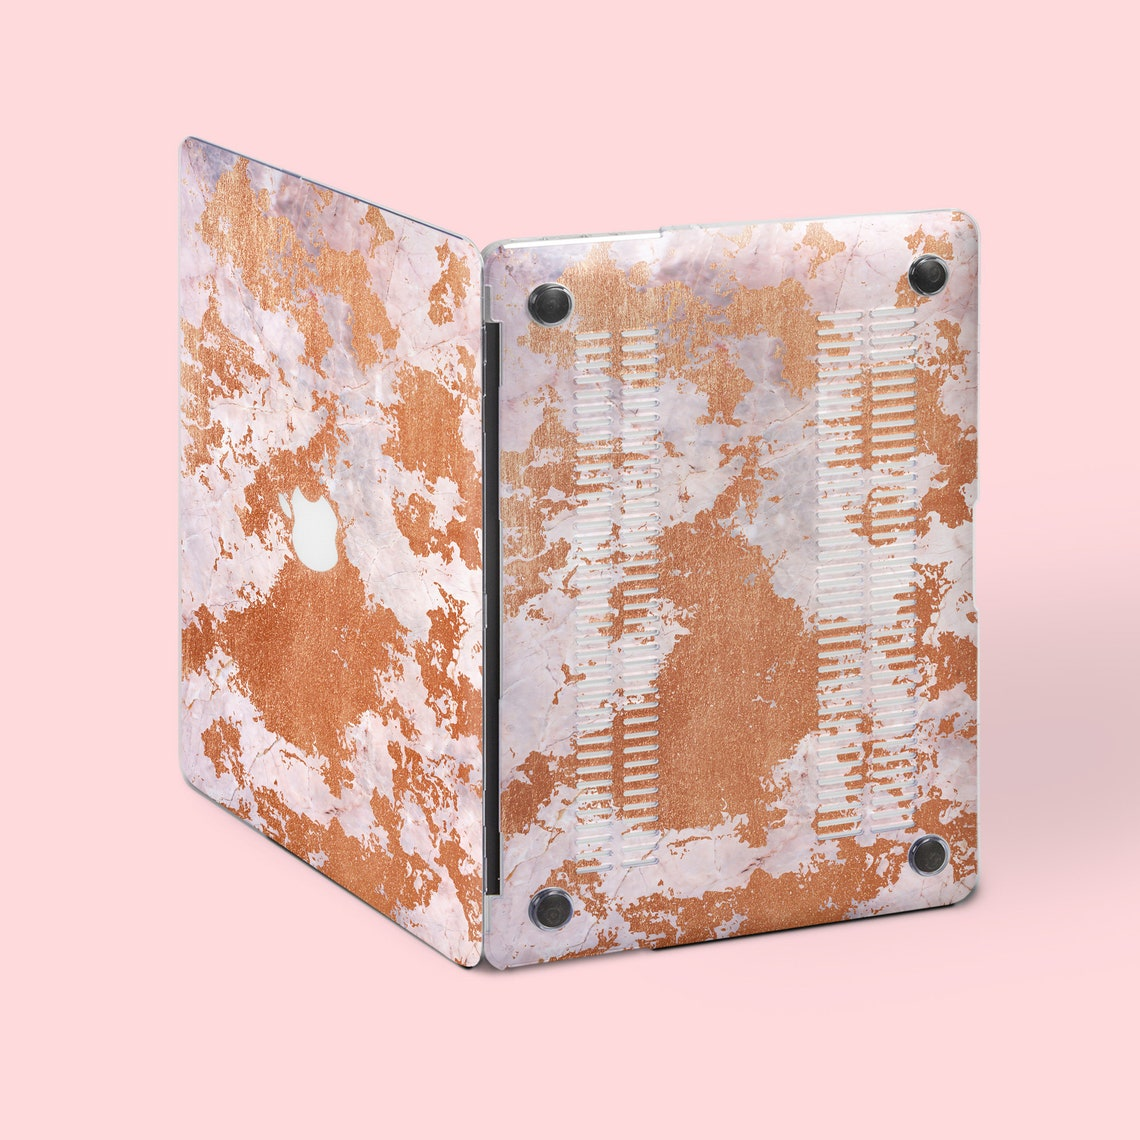 Bronze Marble Macbook Case Coque Macbook Air 13 2018 Case Macbook Air 11 Marble Case Macbook Pro 15 Marble Case Mac book Pro 13 2019 YZ2075